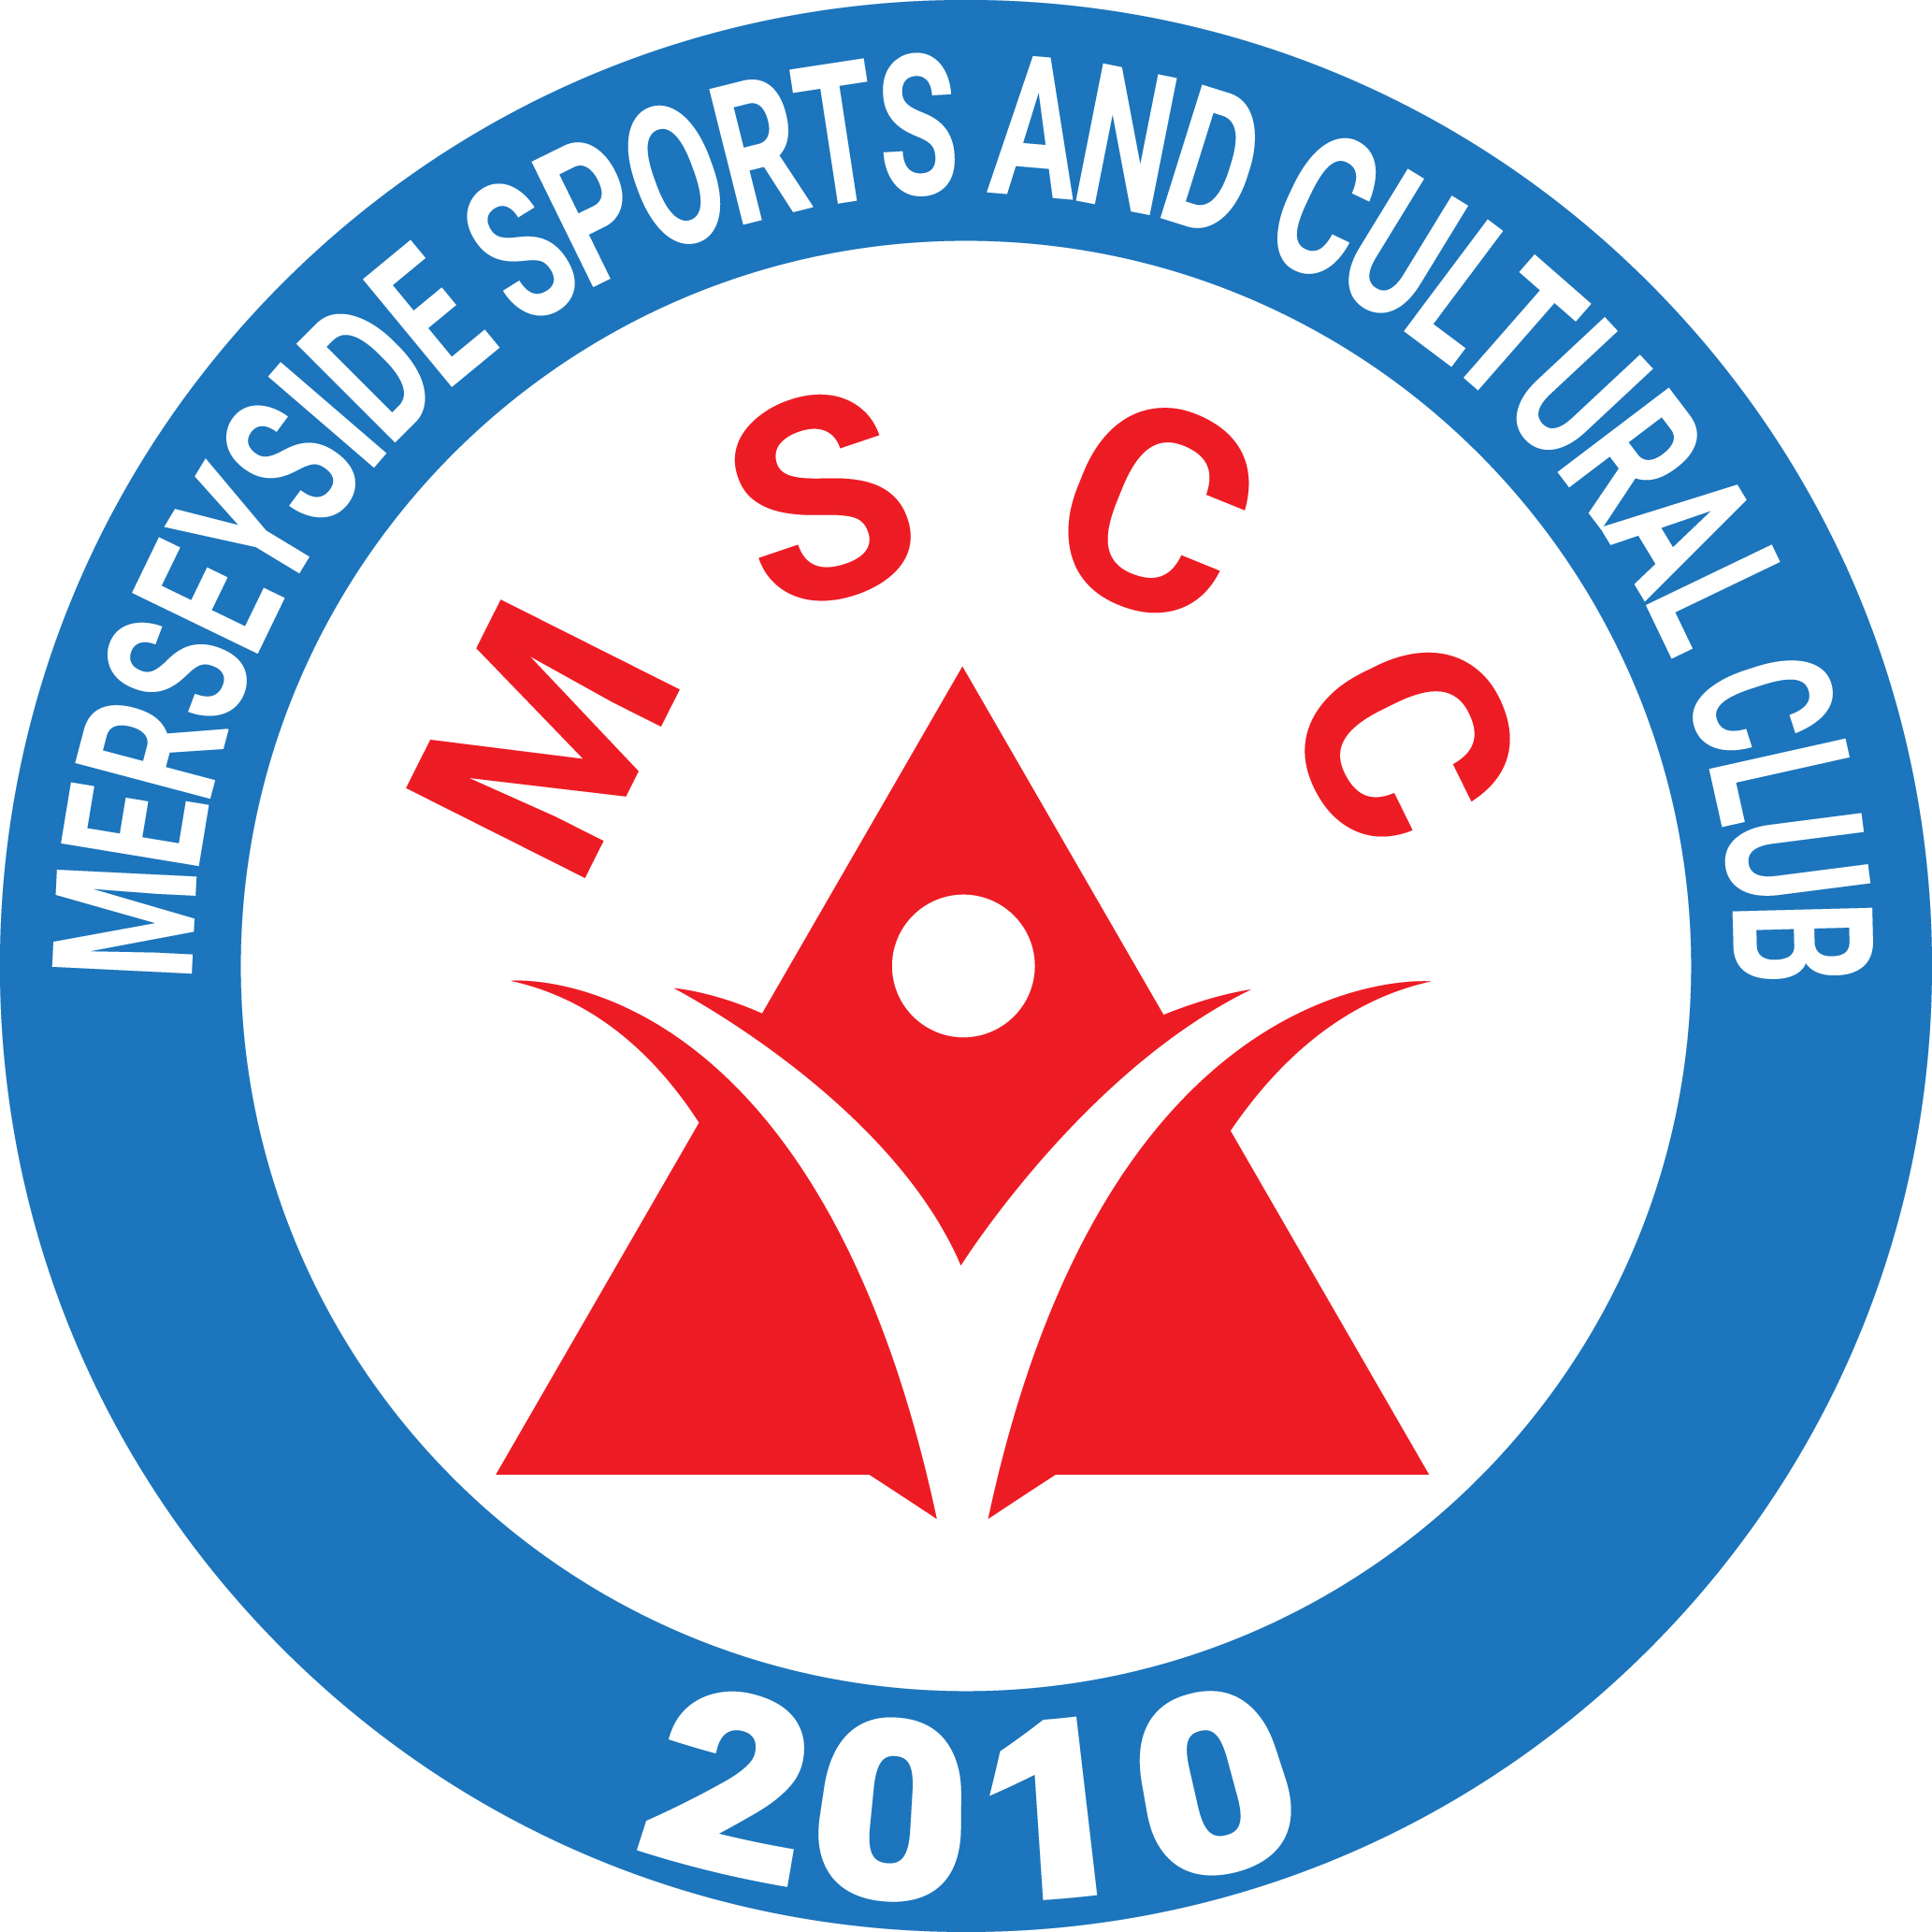 Merseyside Sports and Cultural CC